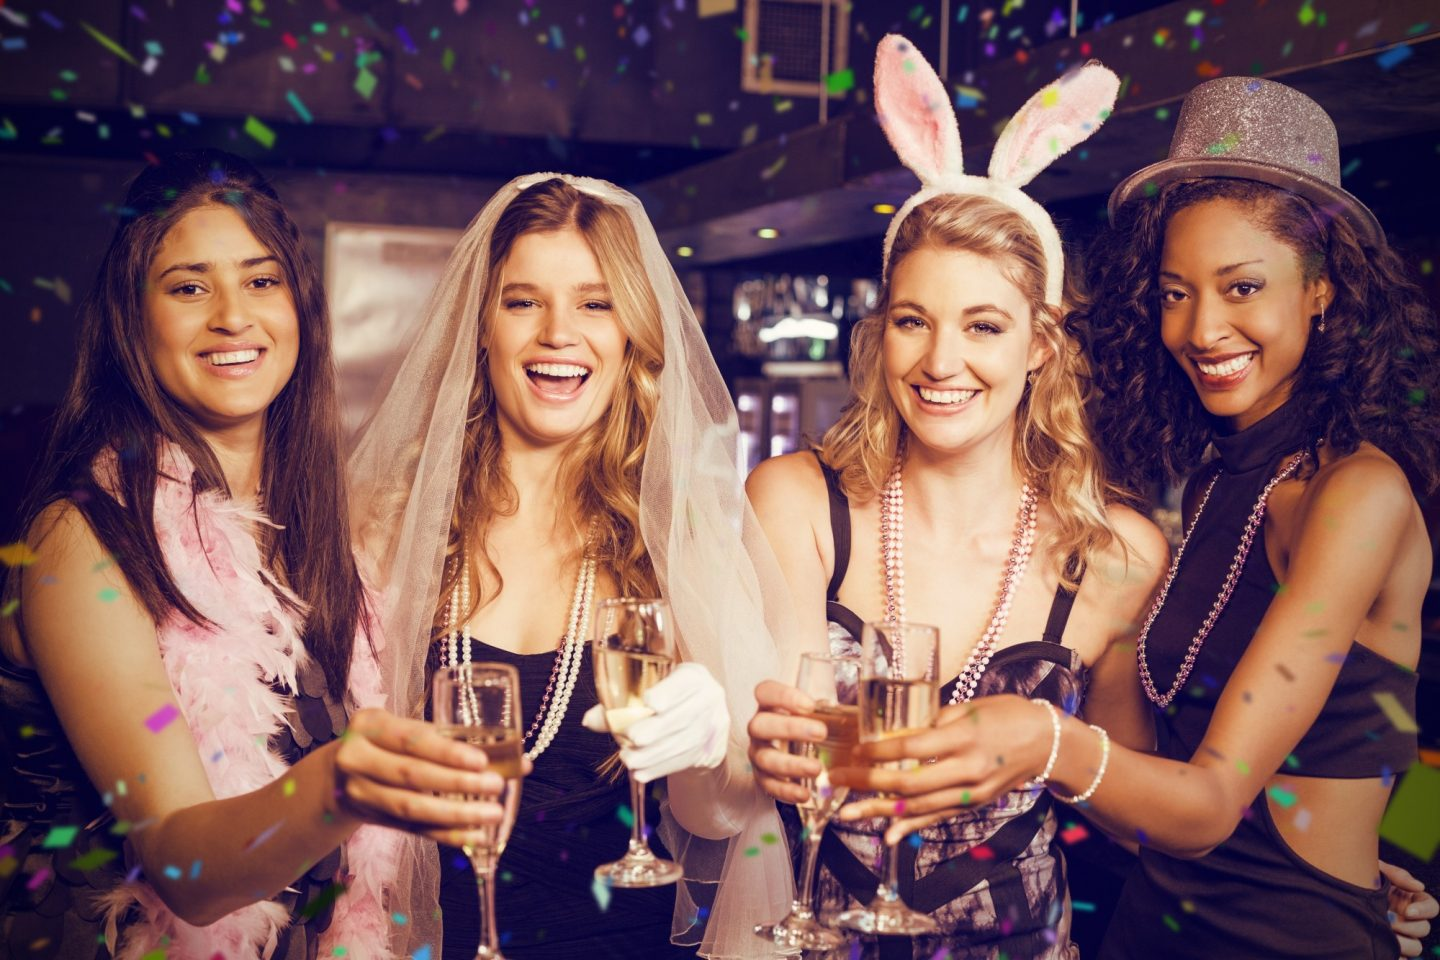 All the Reasons You'll Love Our Car Service for a Bachelorette Party